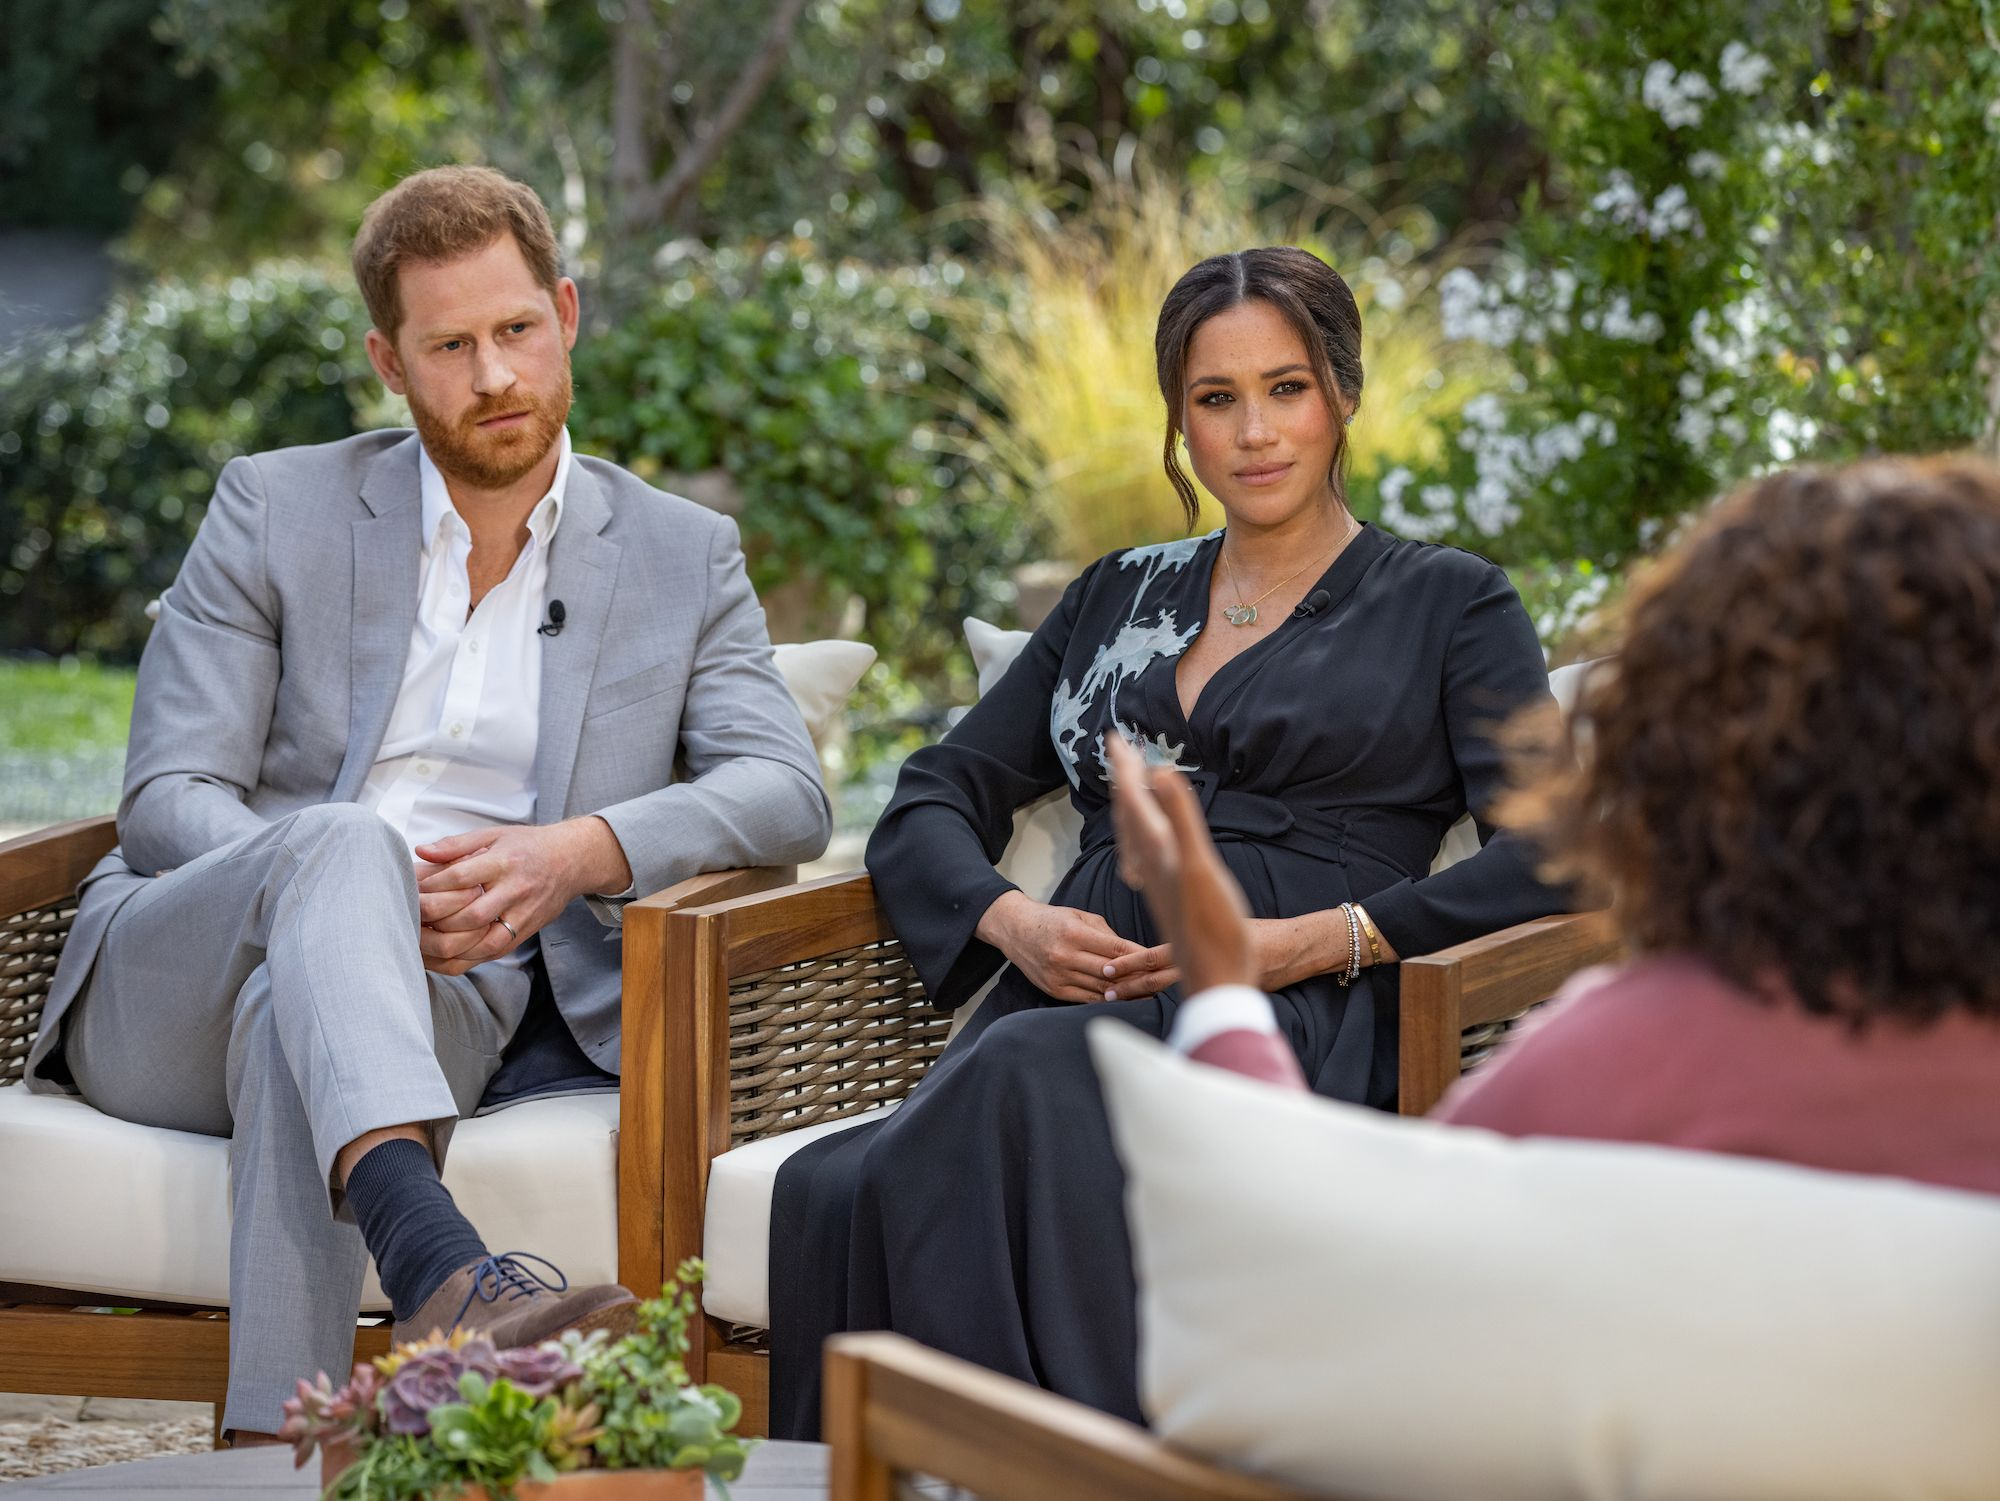 Meghan Markle And Prince Harry's Oprah Interview: What We Learned So Far